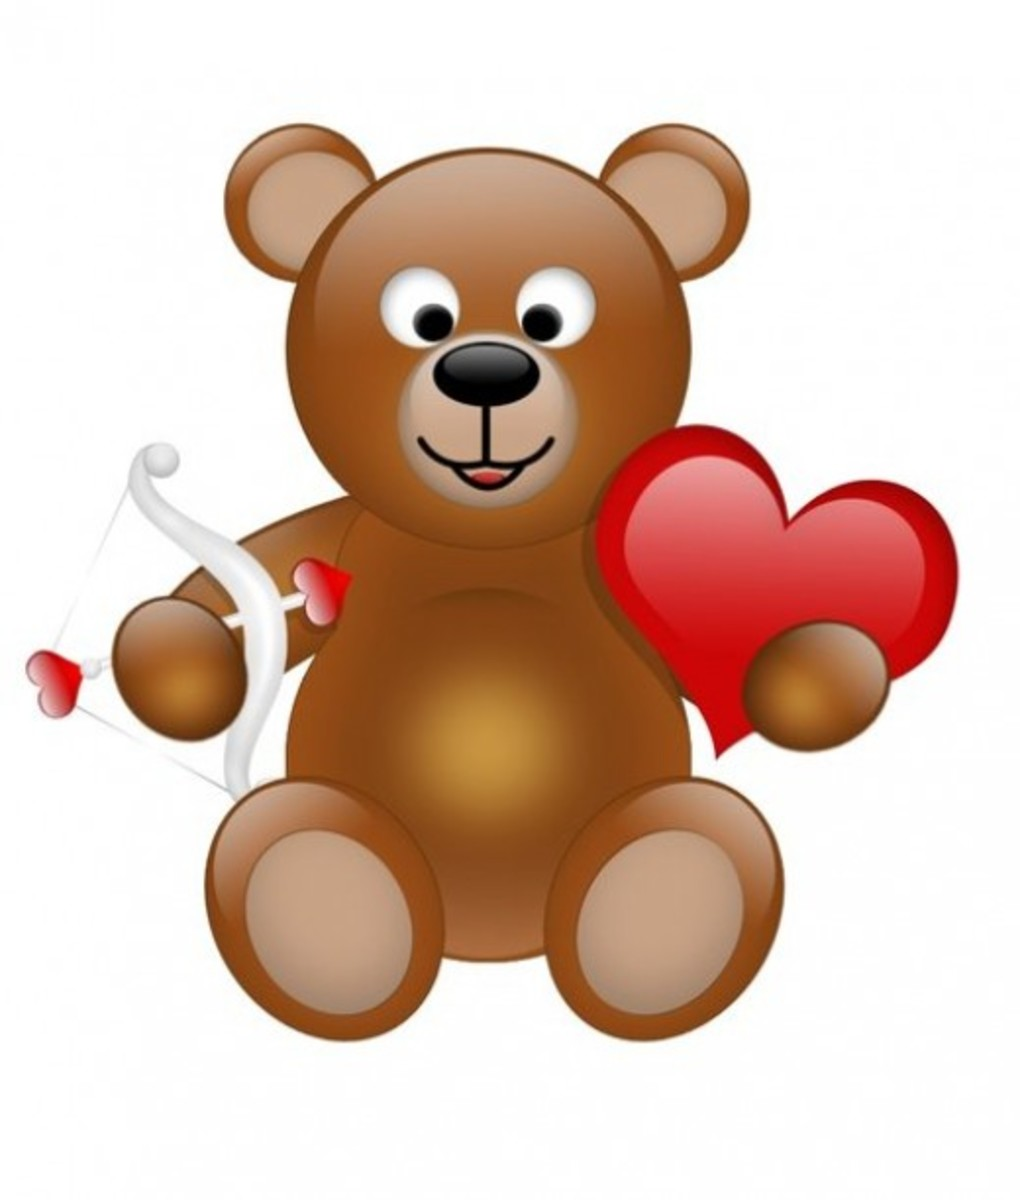 Teddy Bear with Cupid's Bow and Heart